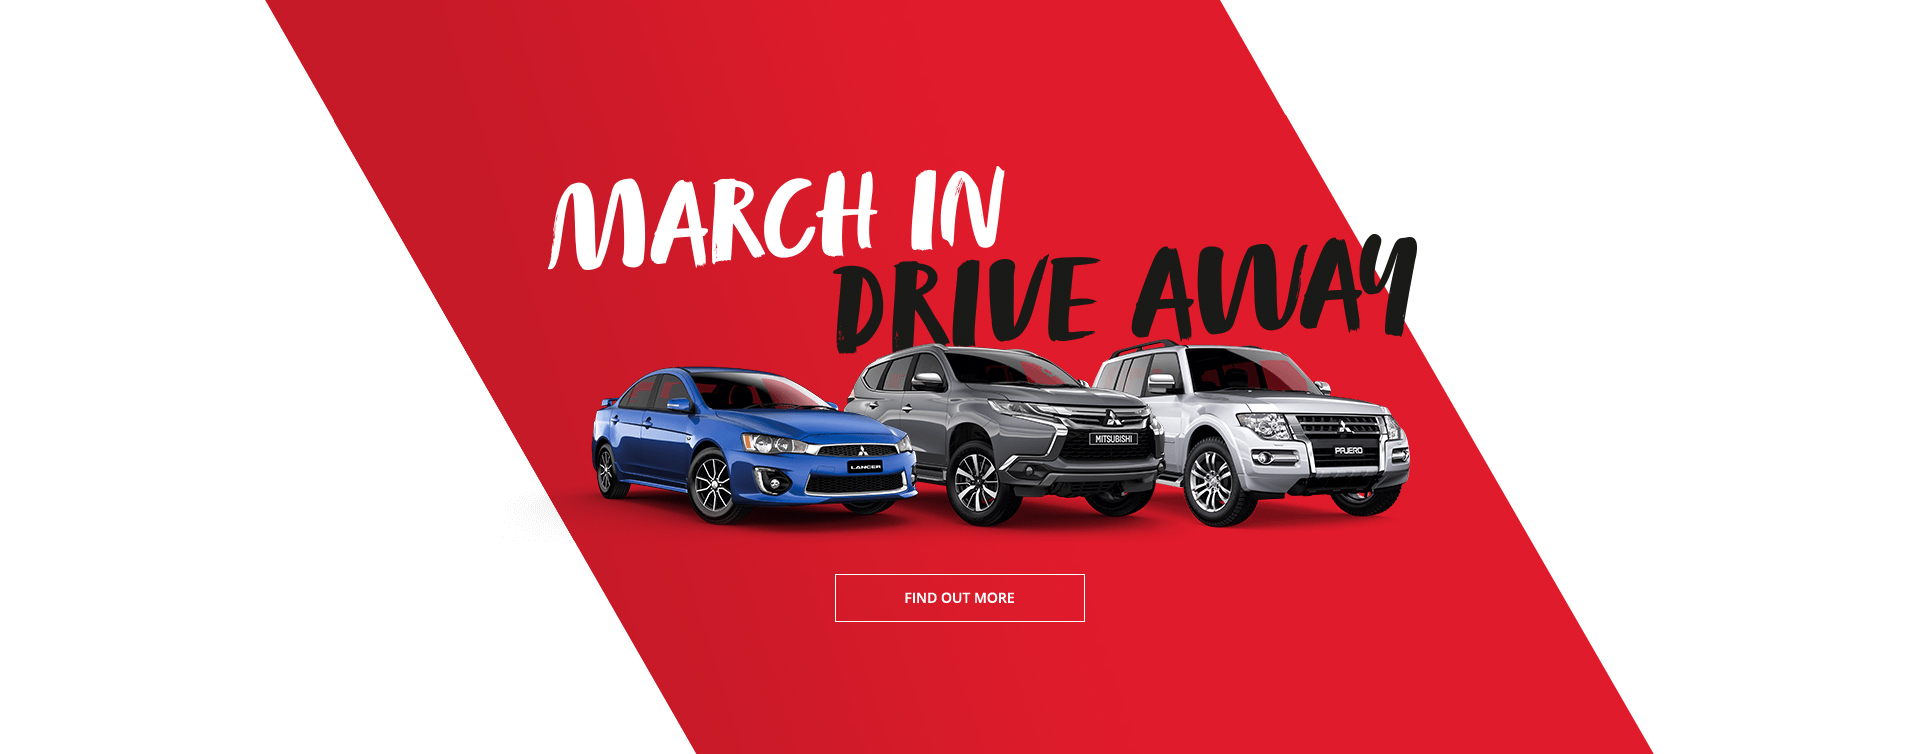 March in and drive away in a new Mitsubishi this month at Redcliffe Mitsubishi Brisbane.